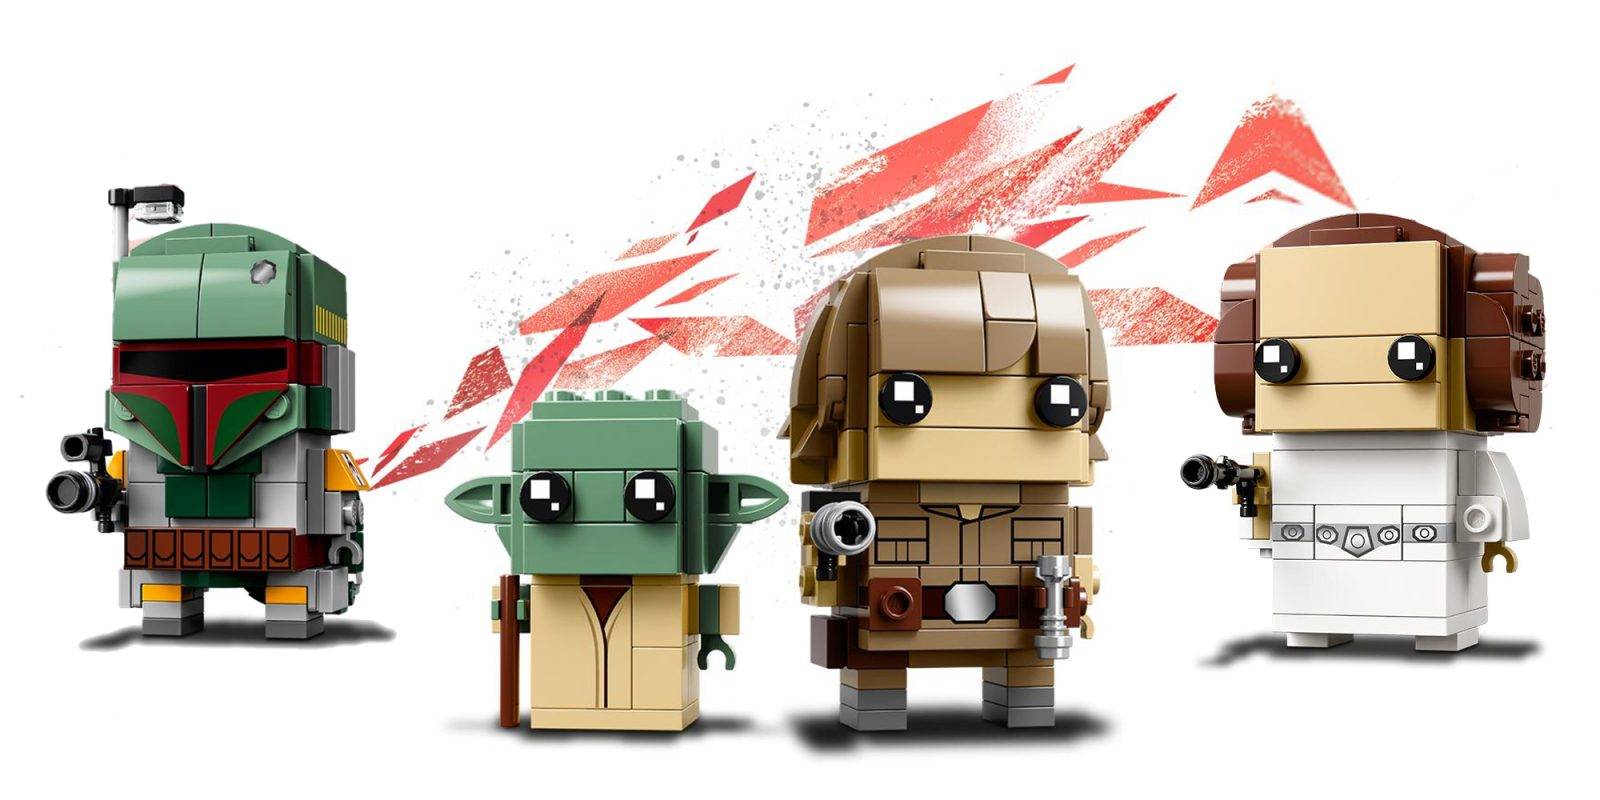 The Force Is Strong With These New Luke Leia And Boba Fett Lego